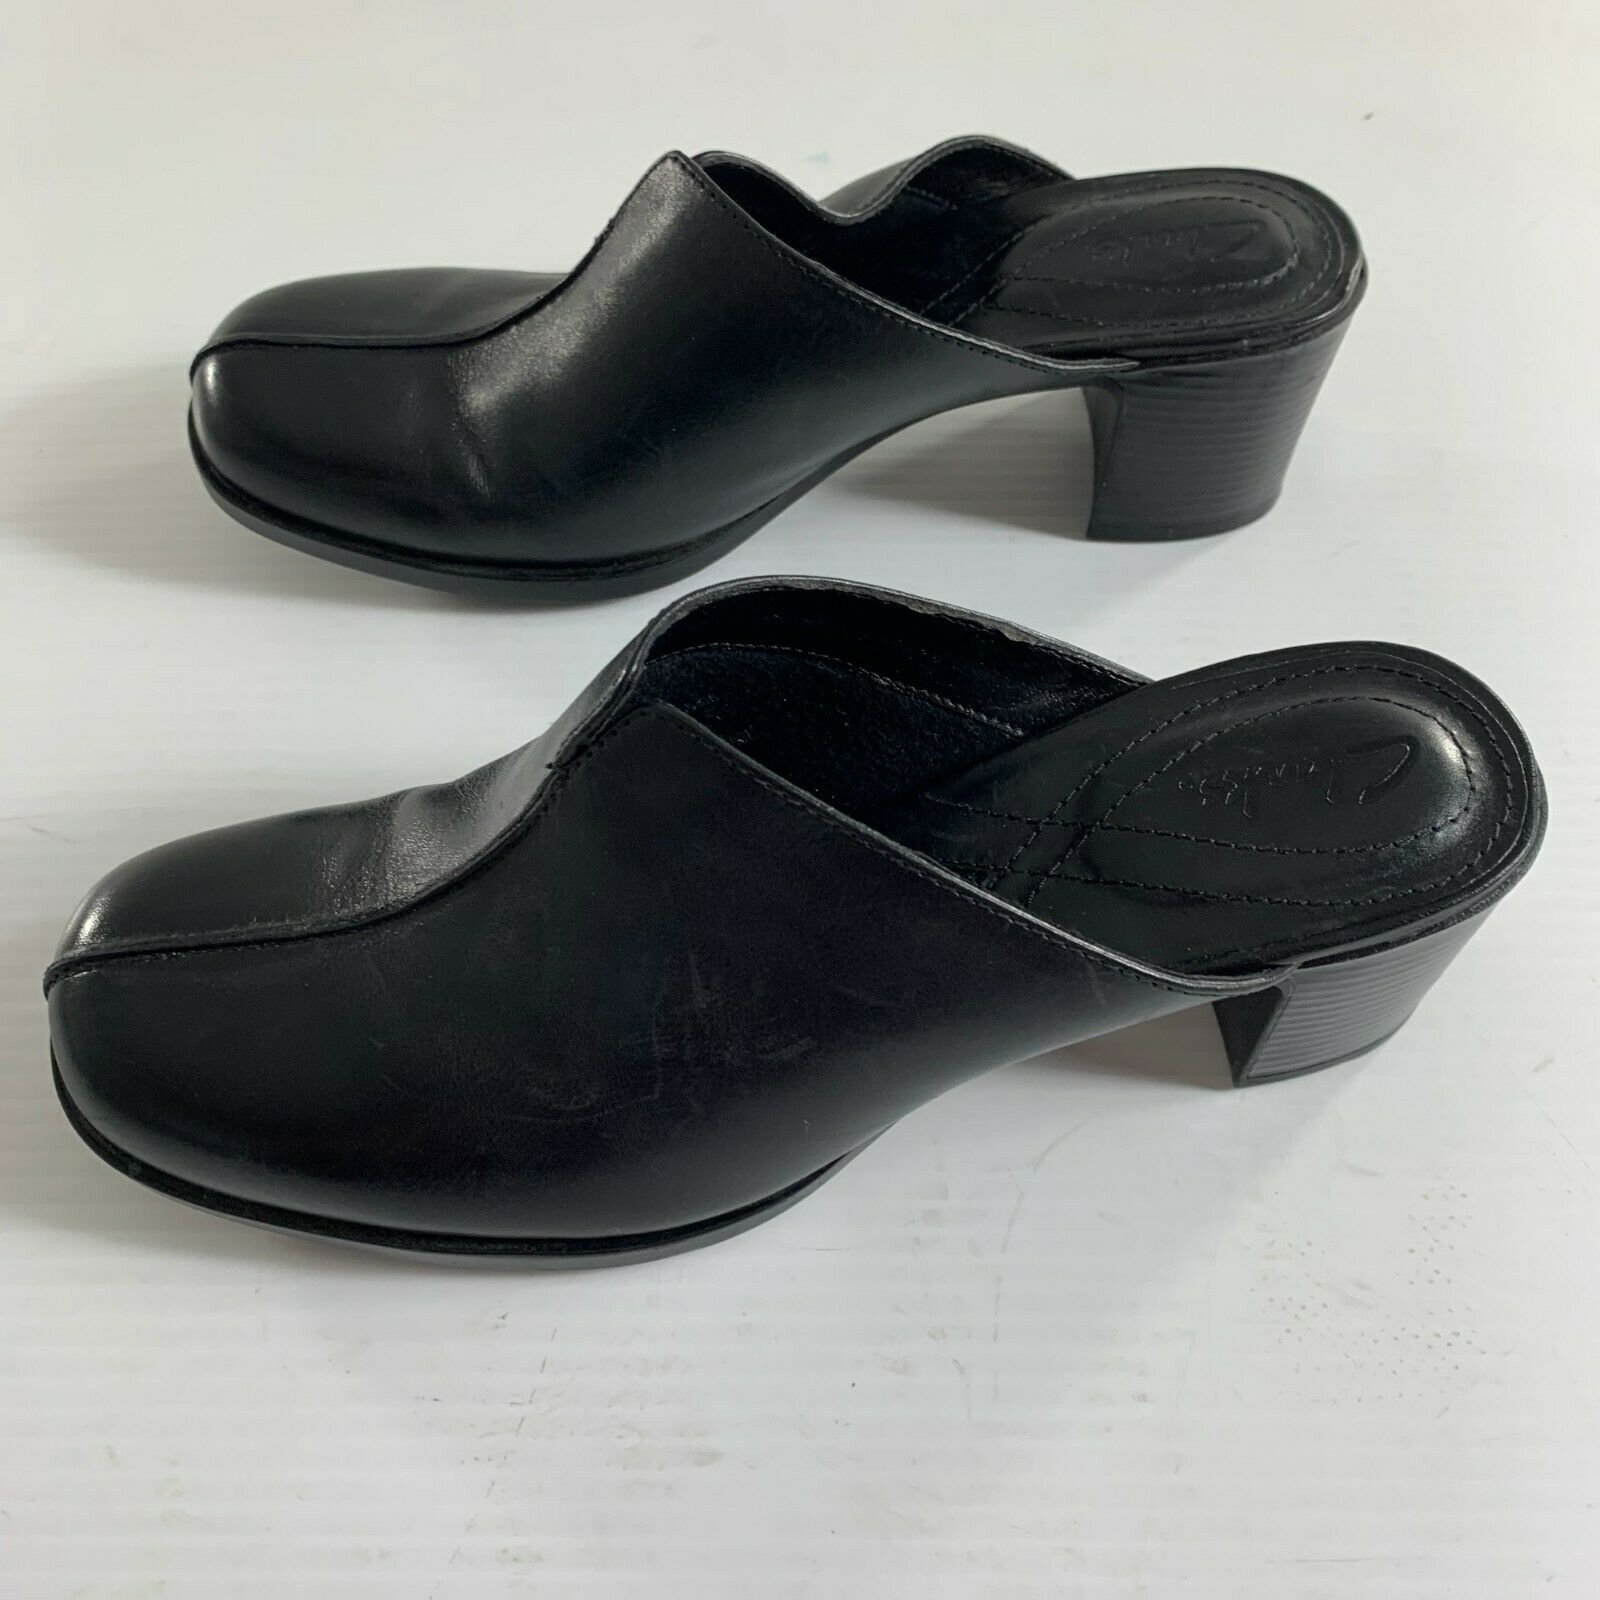 Clarks Womens Mules Shoes Size 7 M Black Leather Clogs 74485 Slip On Heeled